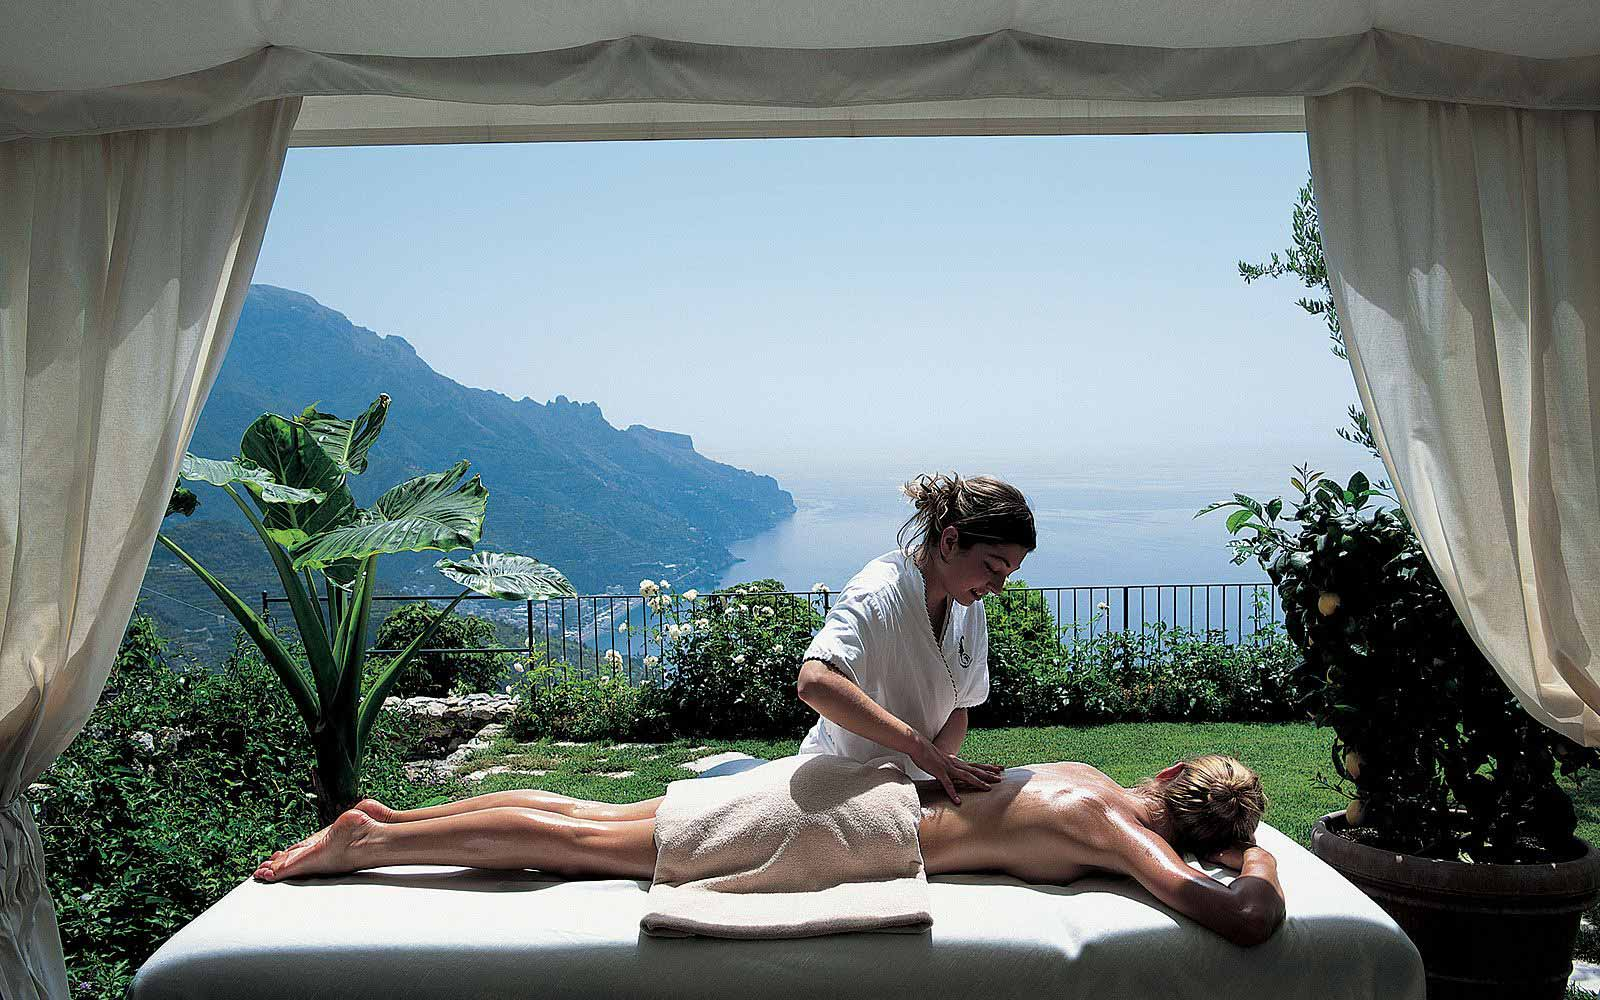 Spa at the Belmond Hotel Caruso